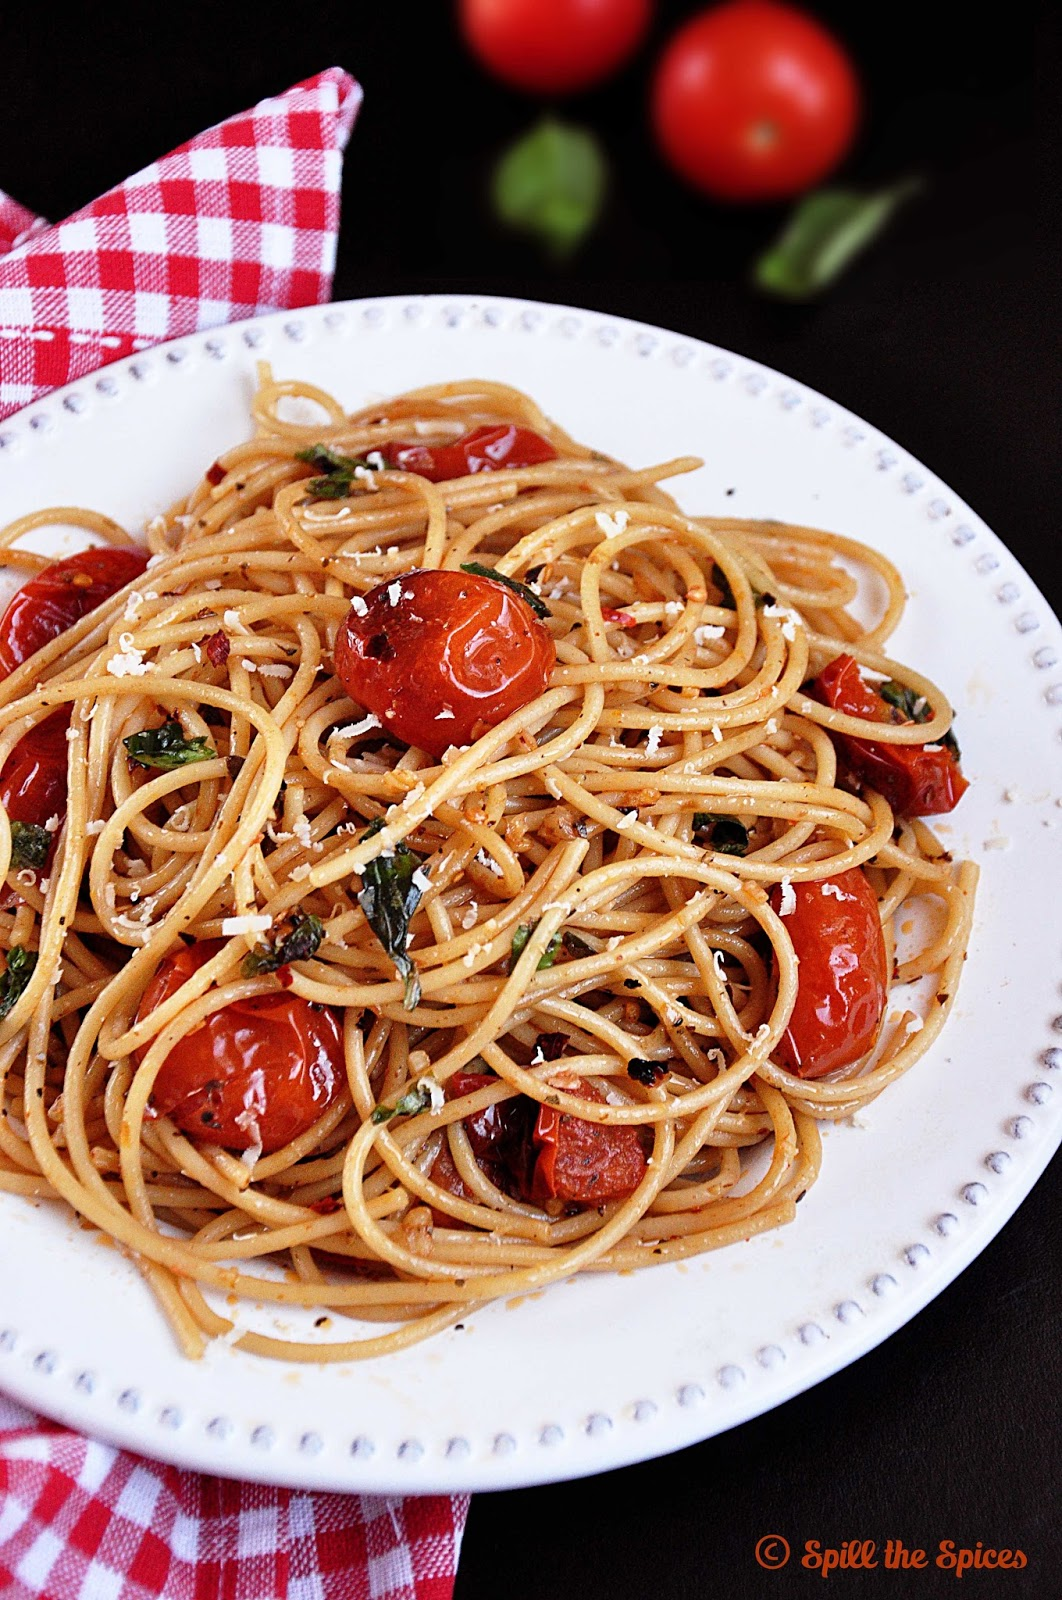 Roasted Cherry Tomato Pasta | Spill the Spices